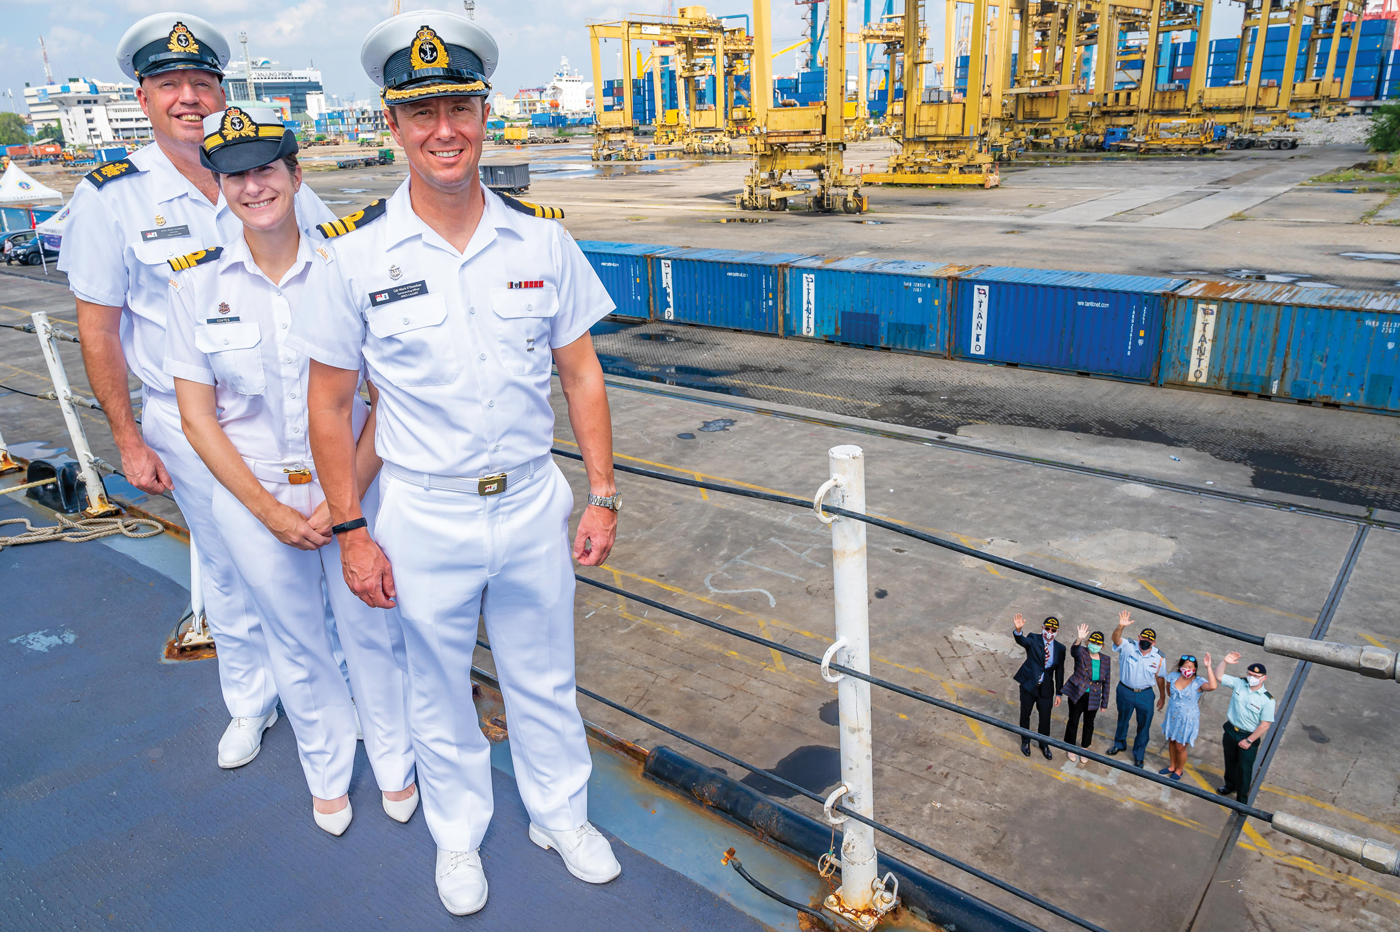 Commander Mark O'Donohue, HMCS Calgary Commanding Officer; Cdr Meghan Coates, Executive Officer; and Chief Petty Officer First Class Mark Chambers, Coxswain, stand on the ship's forecastle as Cameron MacKay, Canadian Ambassador to Indonesia and Timor-Leste; Diedrah Kelly, Canadian Ambassador to the Association of Southeast Asian Nations; Colonel Andrew Cleveland, Canadian Defence Attaché to Indonesia, the Philippines, Brunei and Timor-Leste; and two of their staff members wave farewell from the jetty as the ship was alongside in Jakarta, Indonesia, July 2.